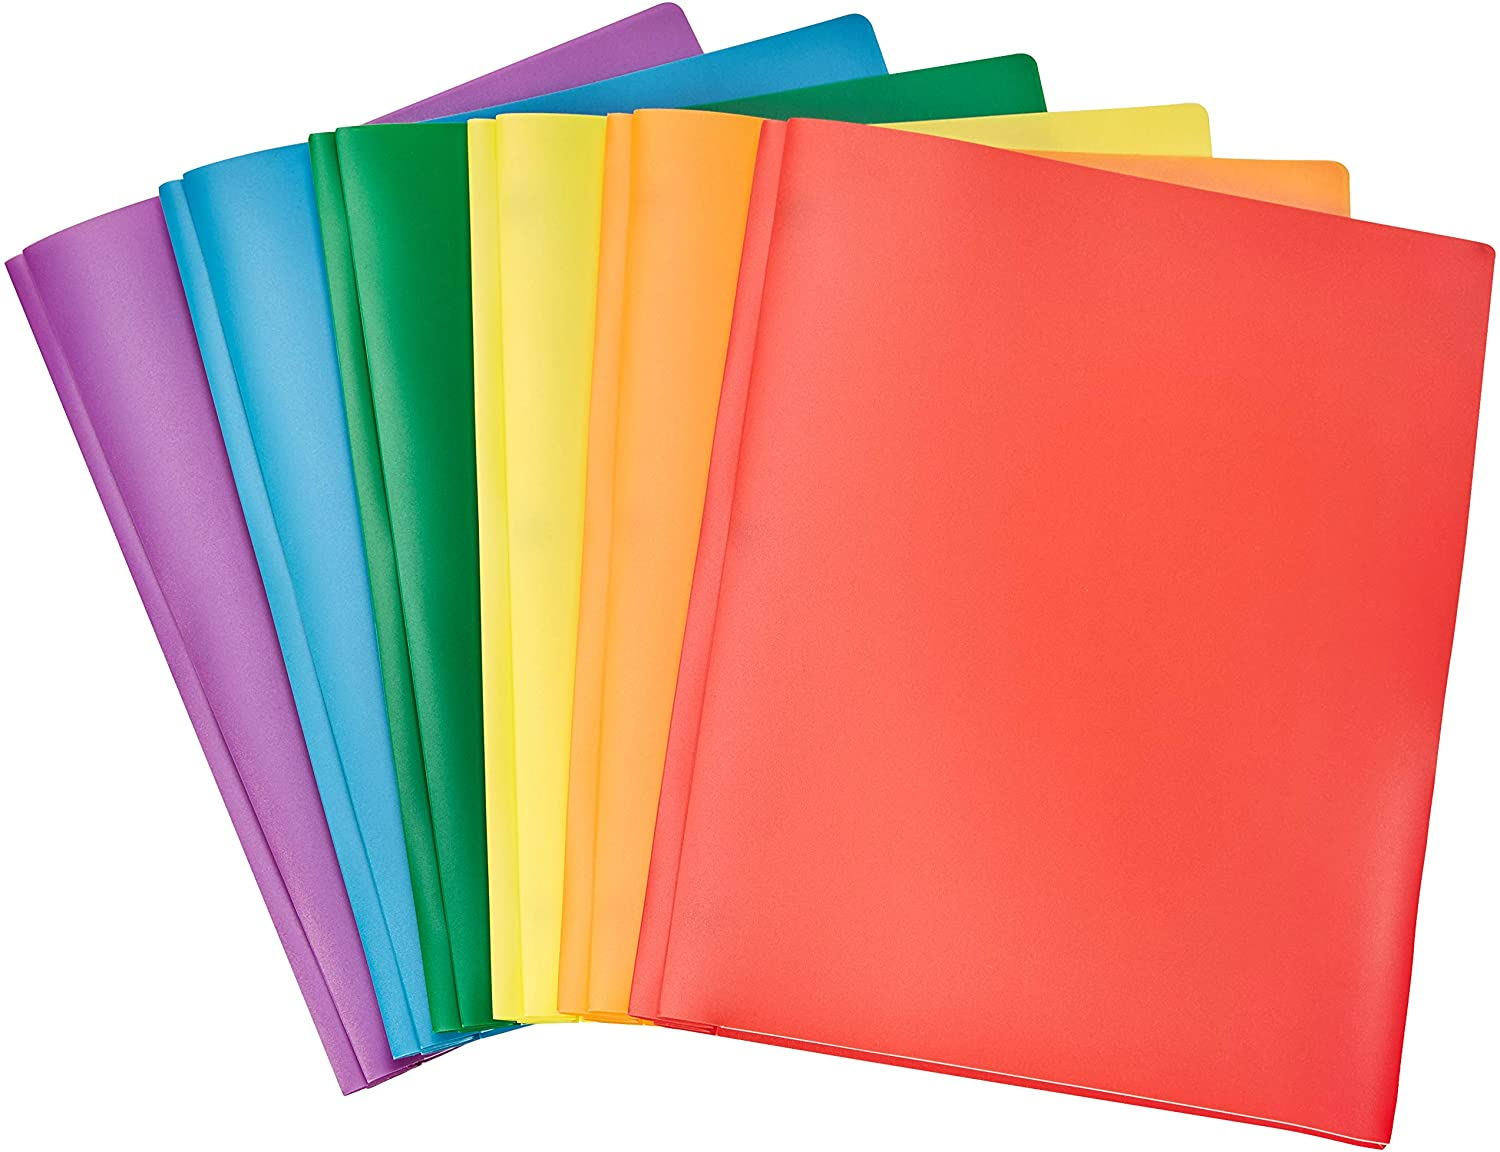 AmazonBasics Heavy Duty Plastic Folders with 2 Pockets for Letter Size Paper, Pack of 6